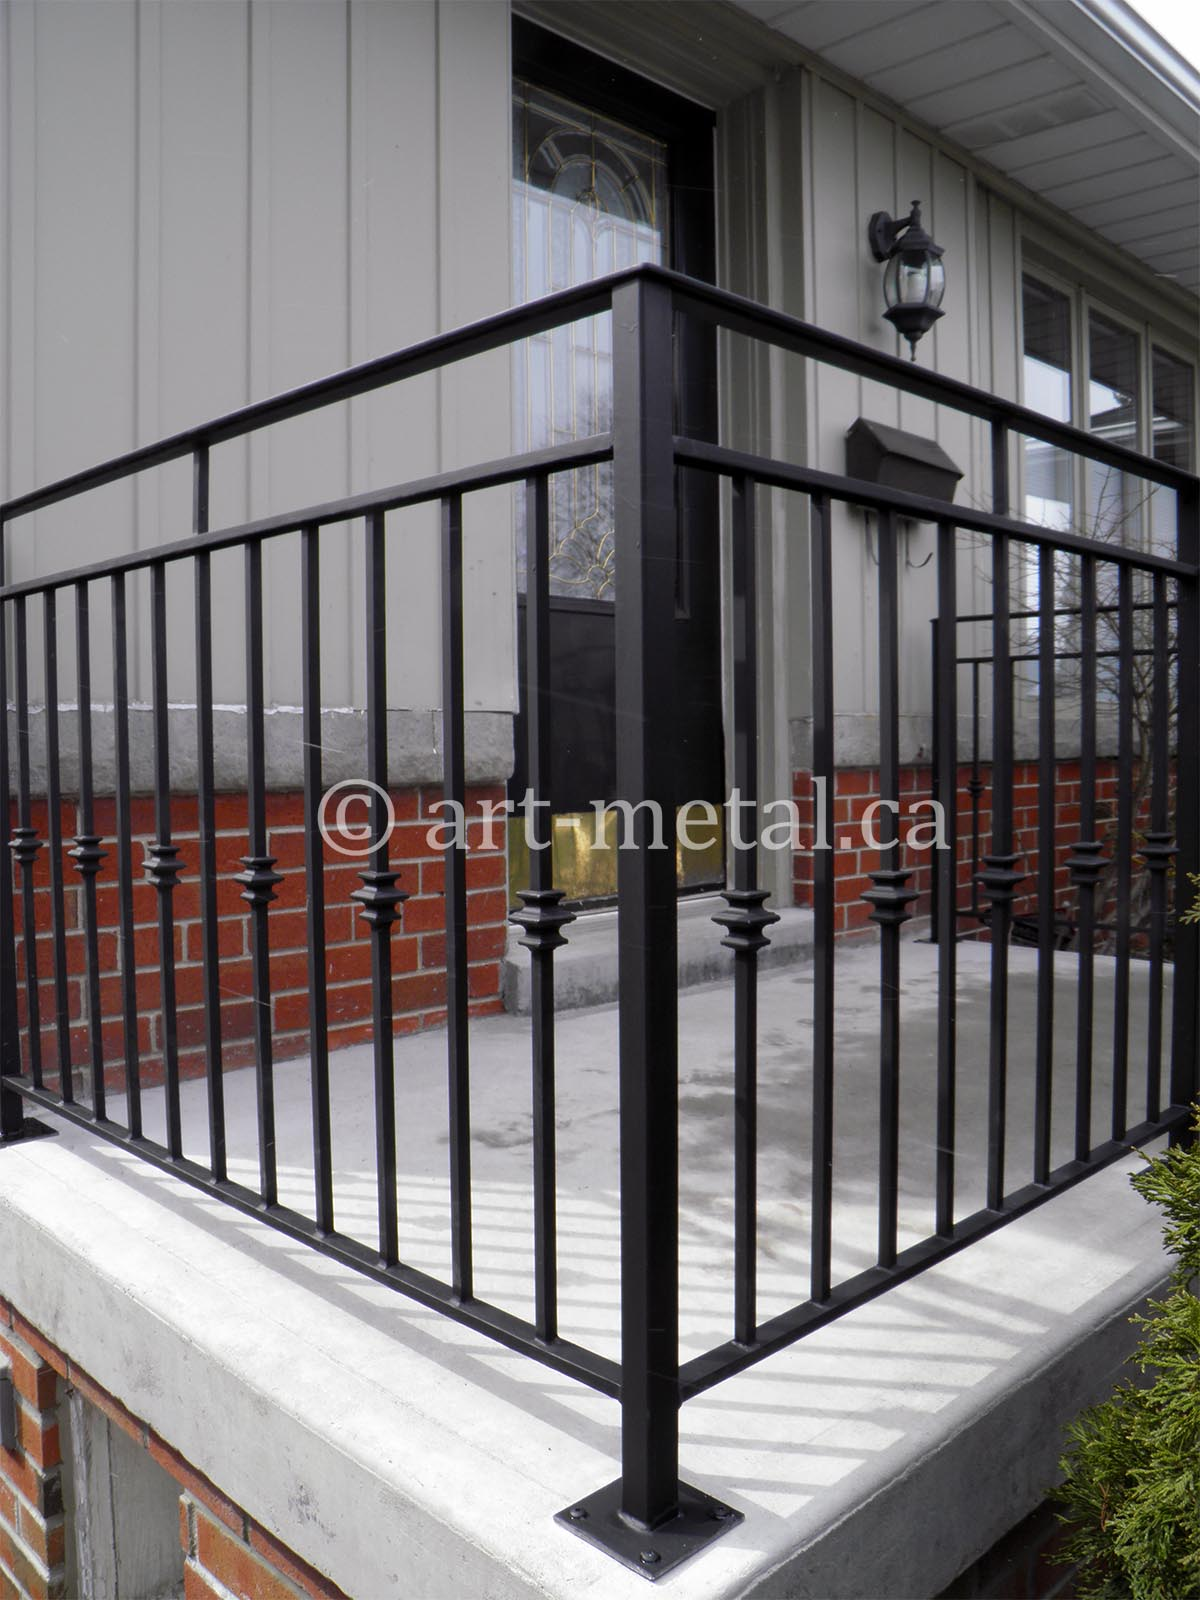 Outdoor Porch Railing Designs From Wood Wrought Iron And